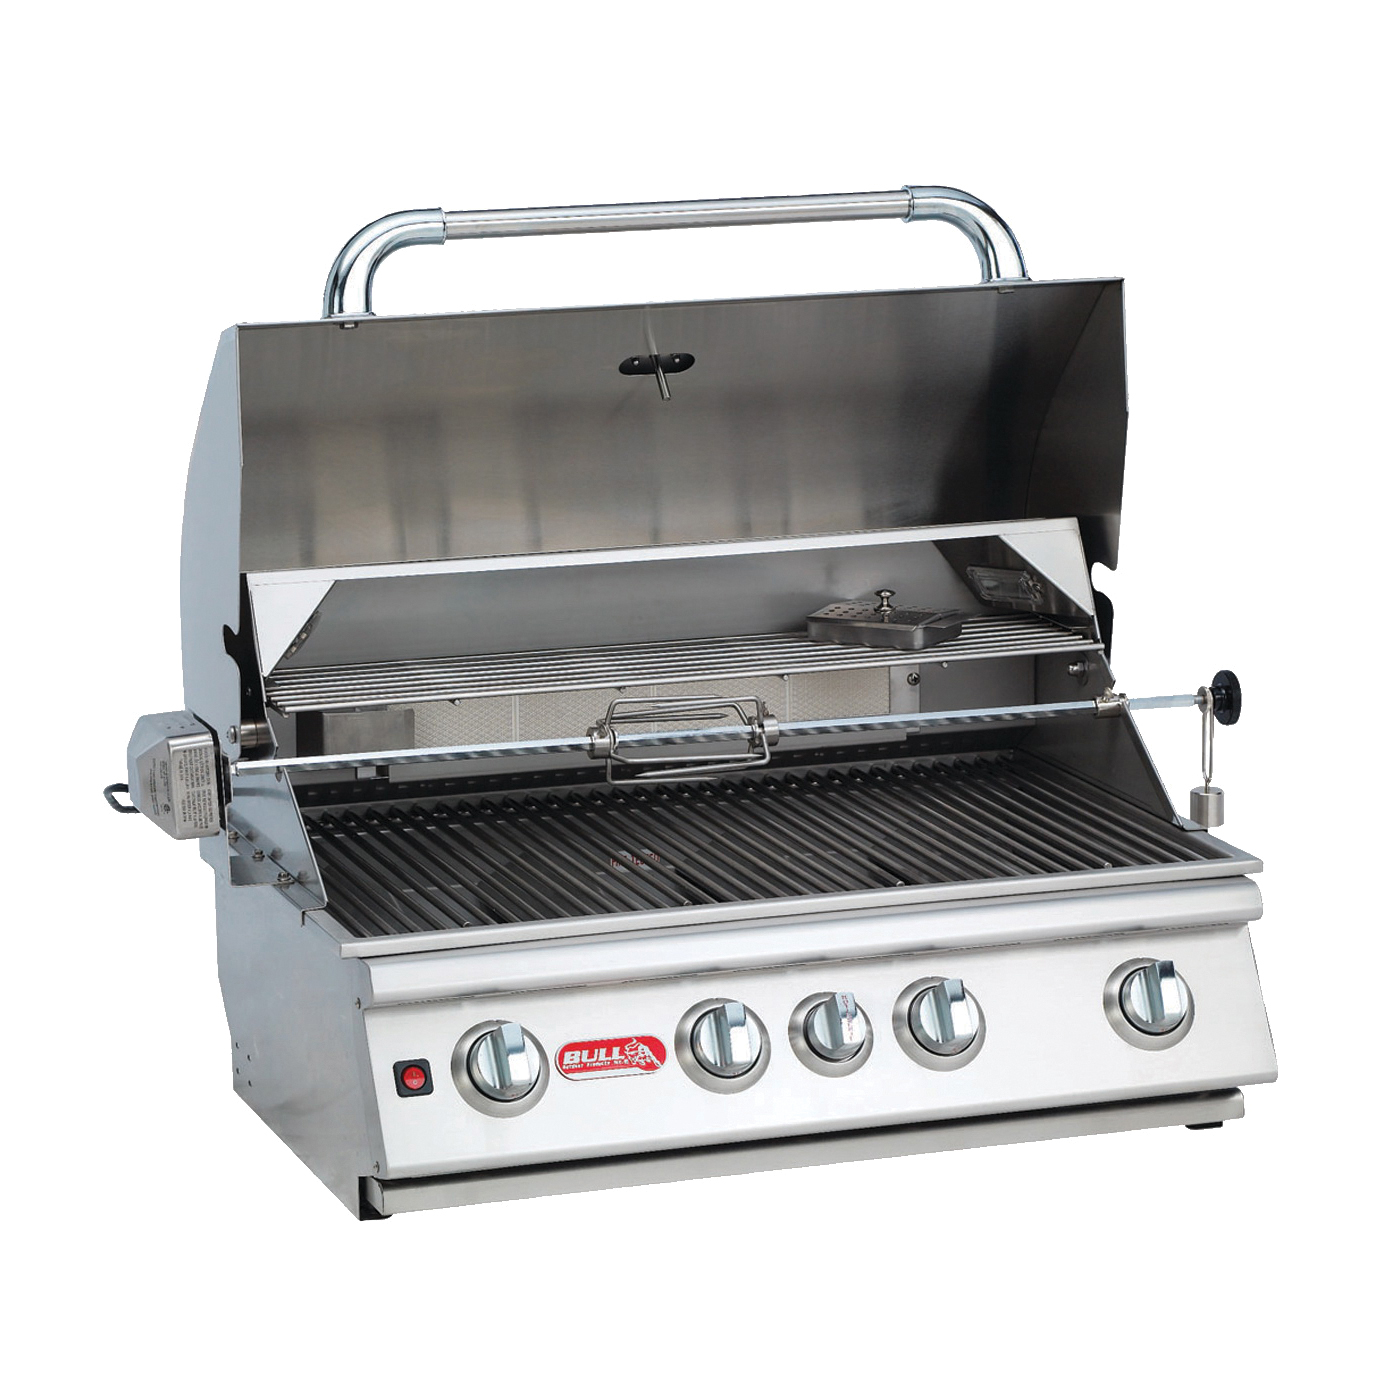 Picture of BULL Angus 47628 Gas Grill Head, 75000 Btu BTU, LP, 4 -Burner, 210 sq-in Secondary Cooking Surface